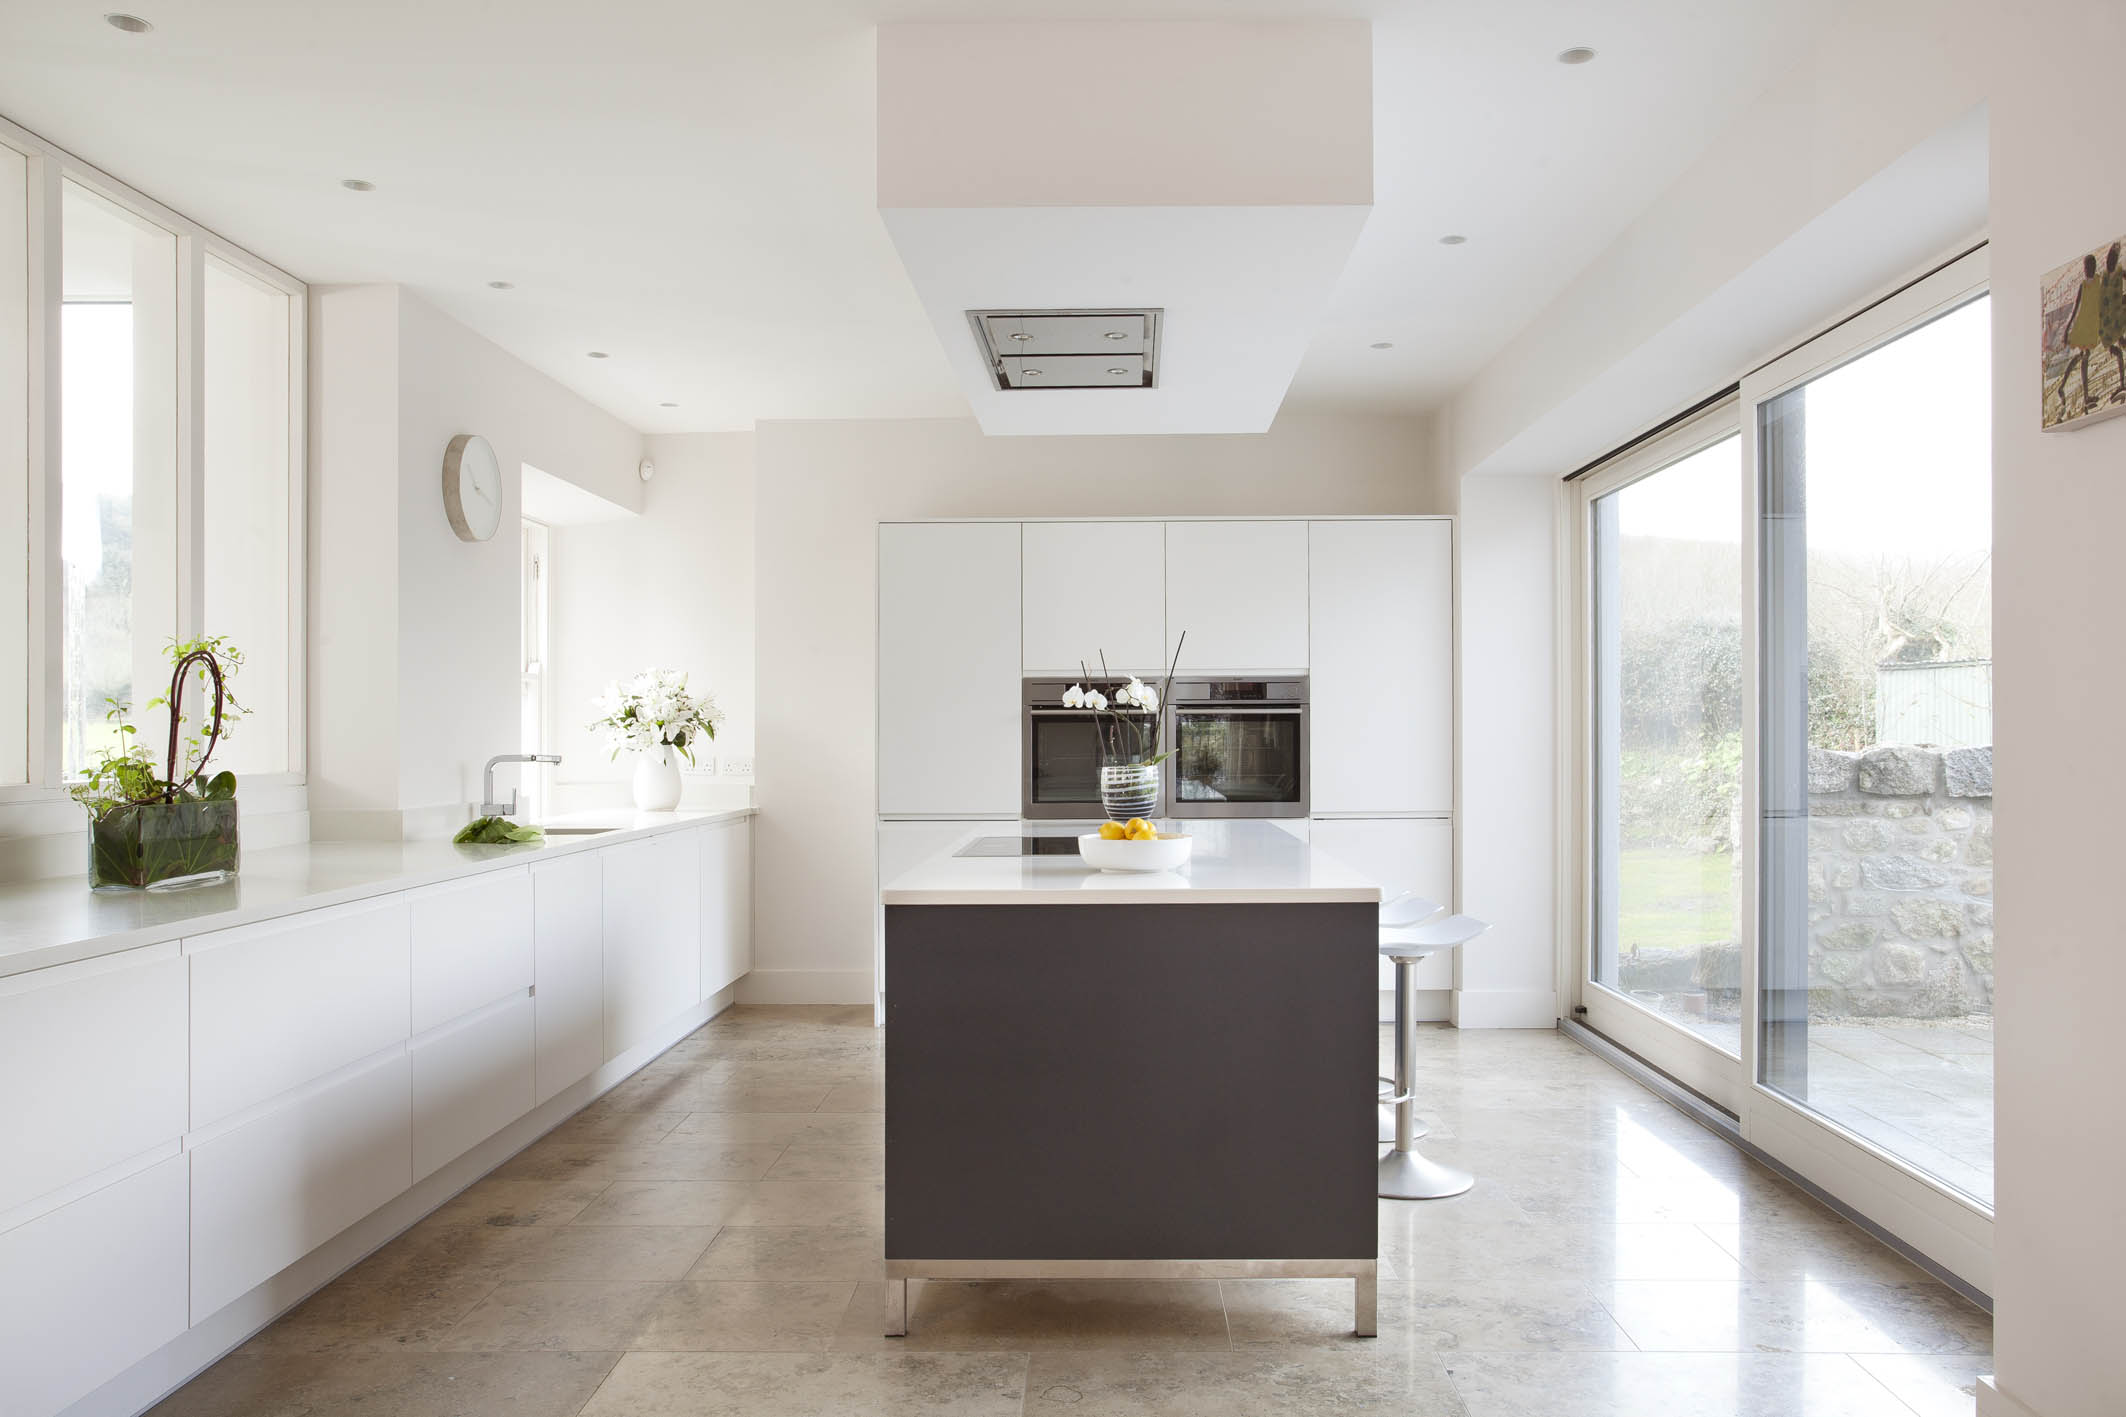 Contemporary German Style Dublin Kitchen Painted In